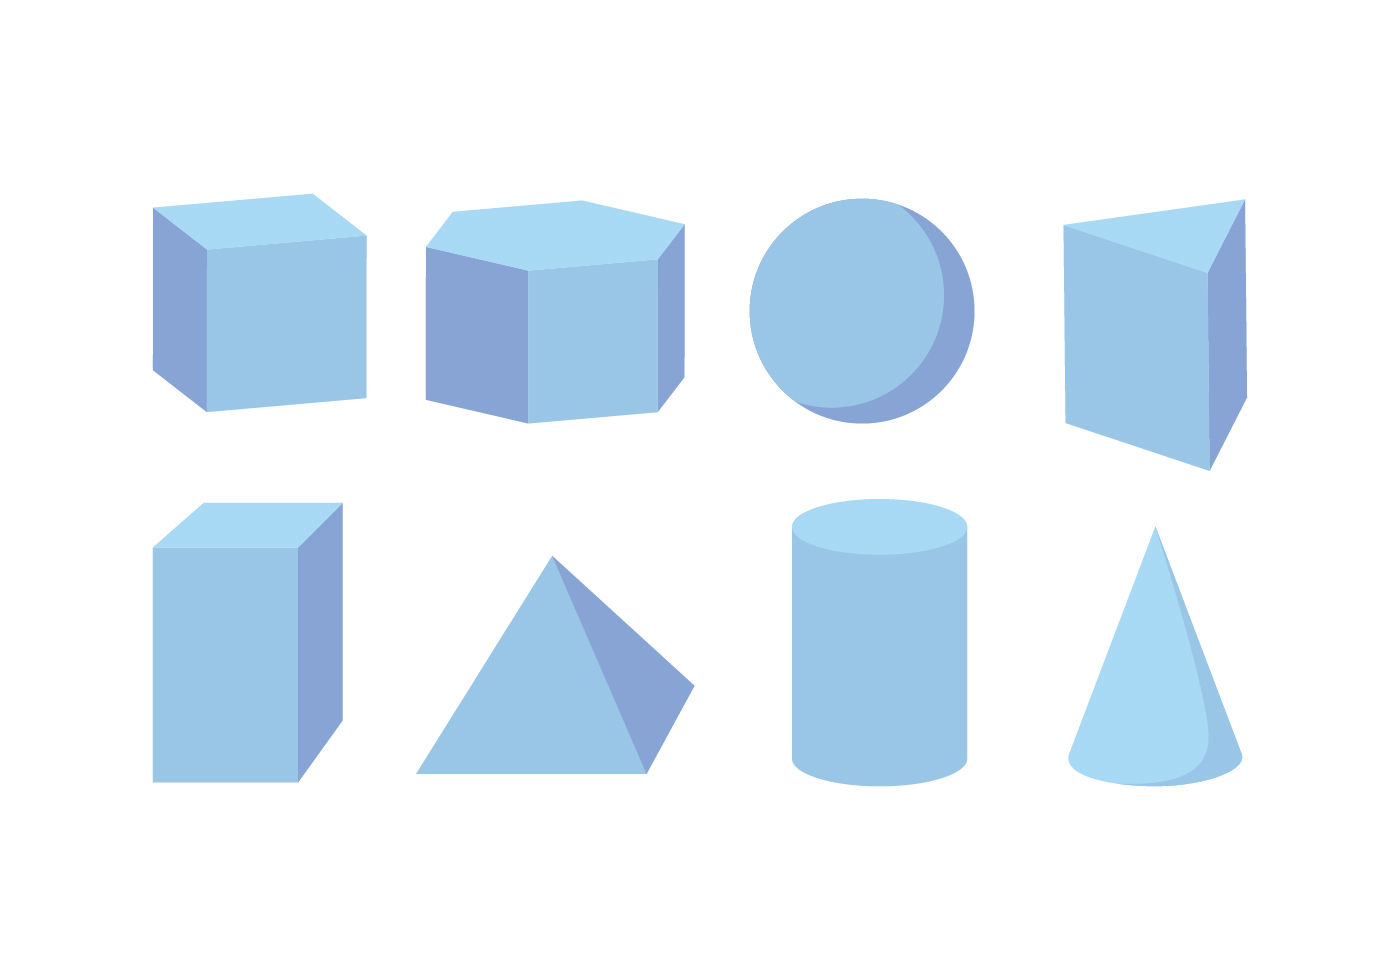 3d Shapes Vector Pack Download Free Vector Art Stock